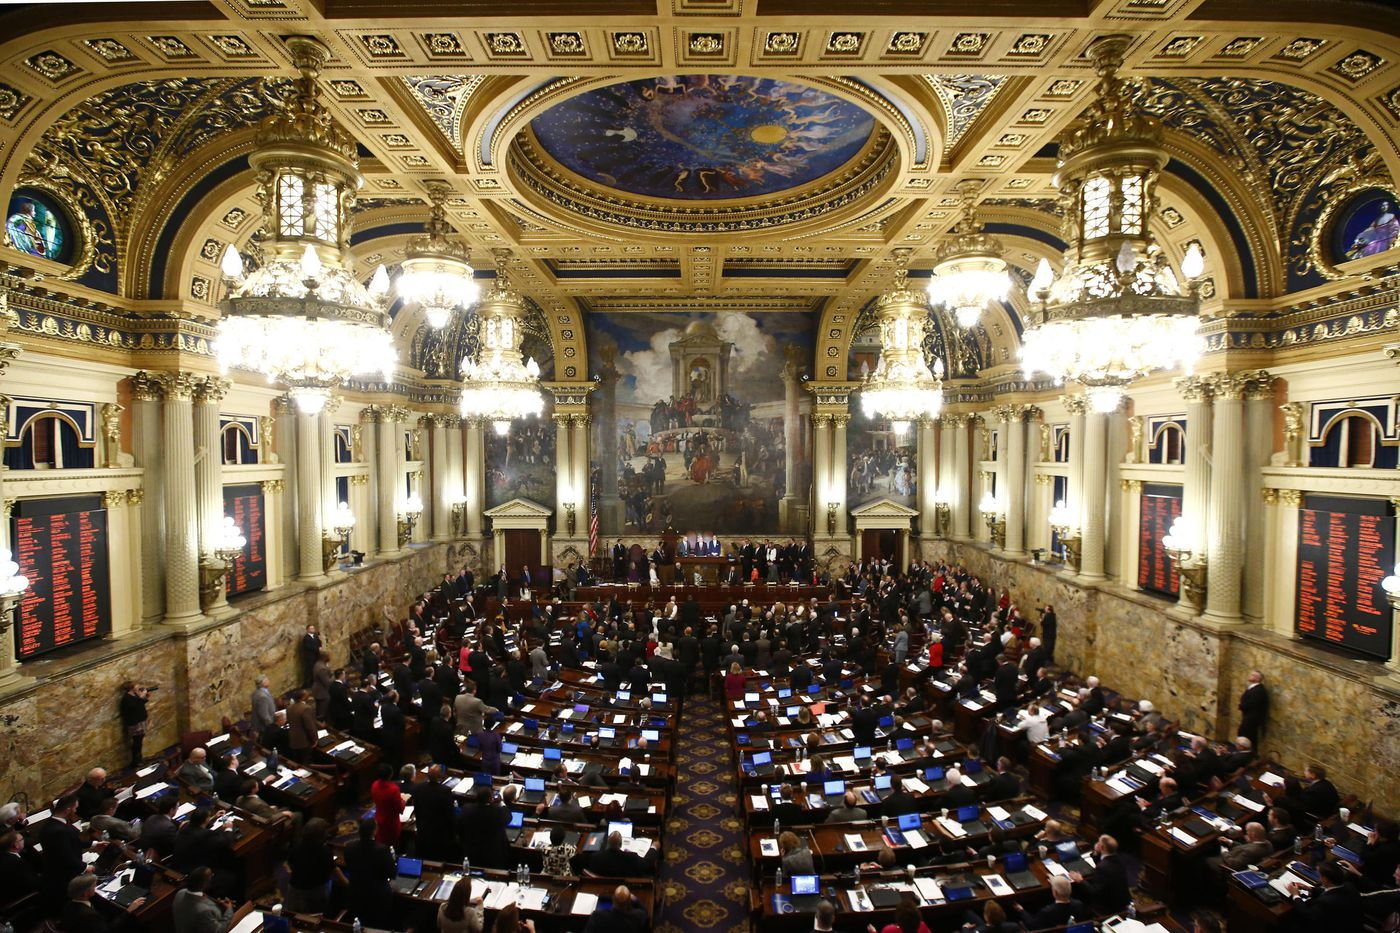 In the Pa. Senate, every day starts with a witty ditty